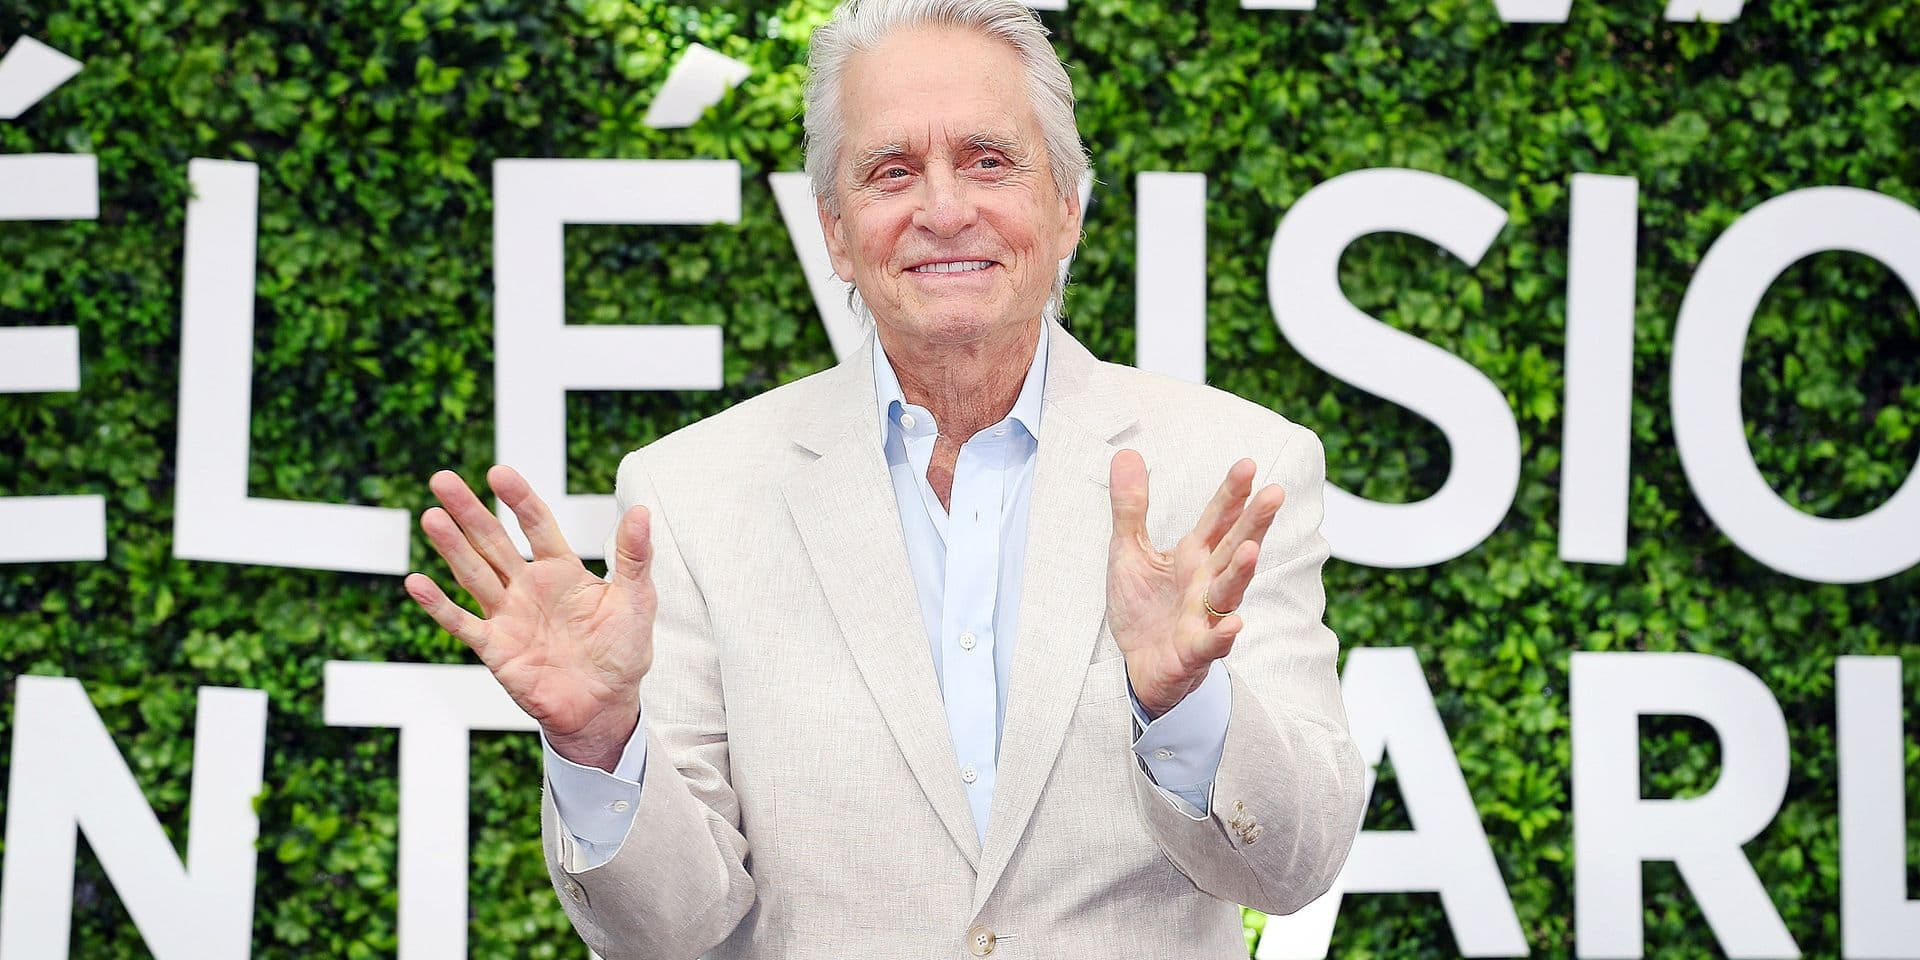 Michael Douglas attends a photocall during the 59th Monte Carlo TV Festival at Grimaldi Forum on June 18, 2019 in Monte-Carlo, Monaco. Reporters / Crystal Pictures